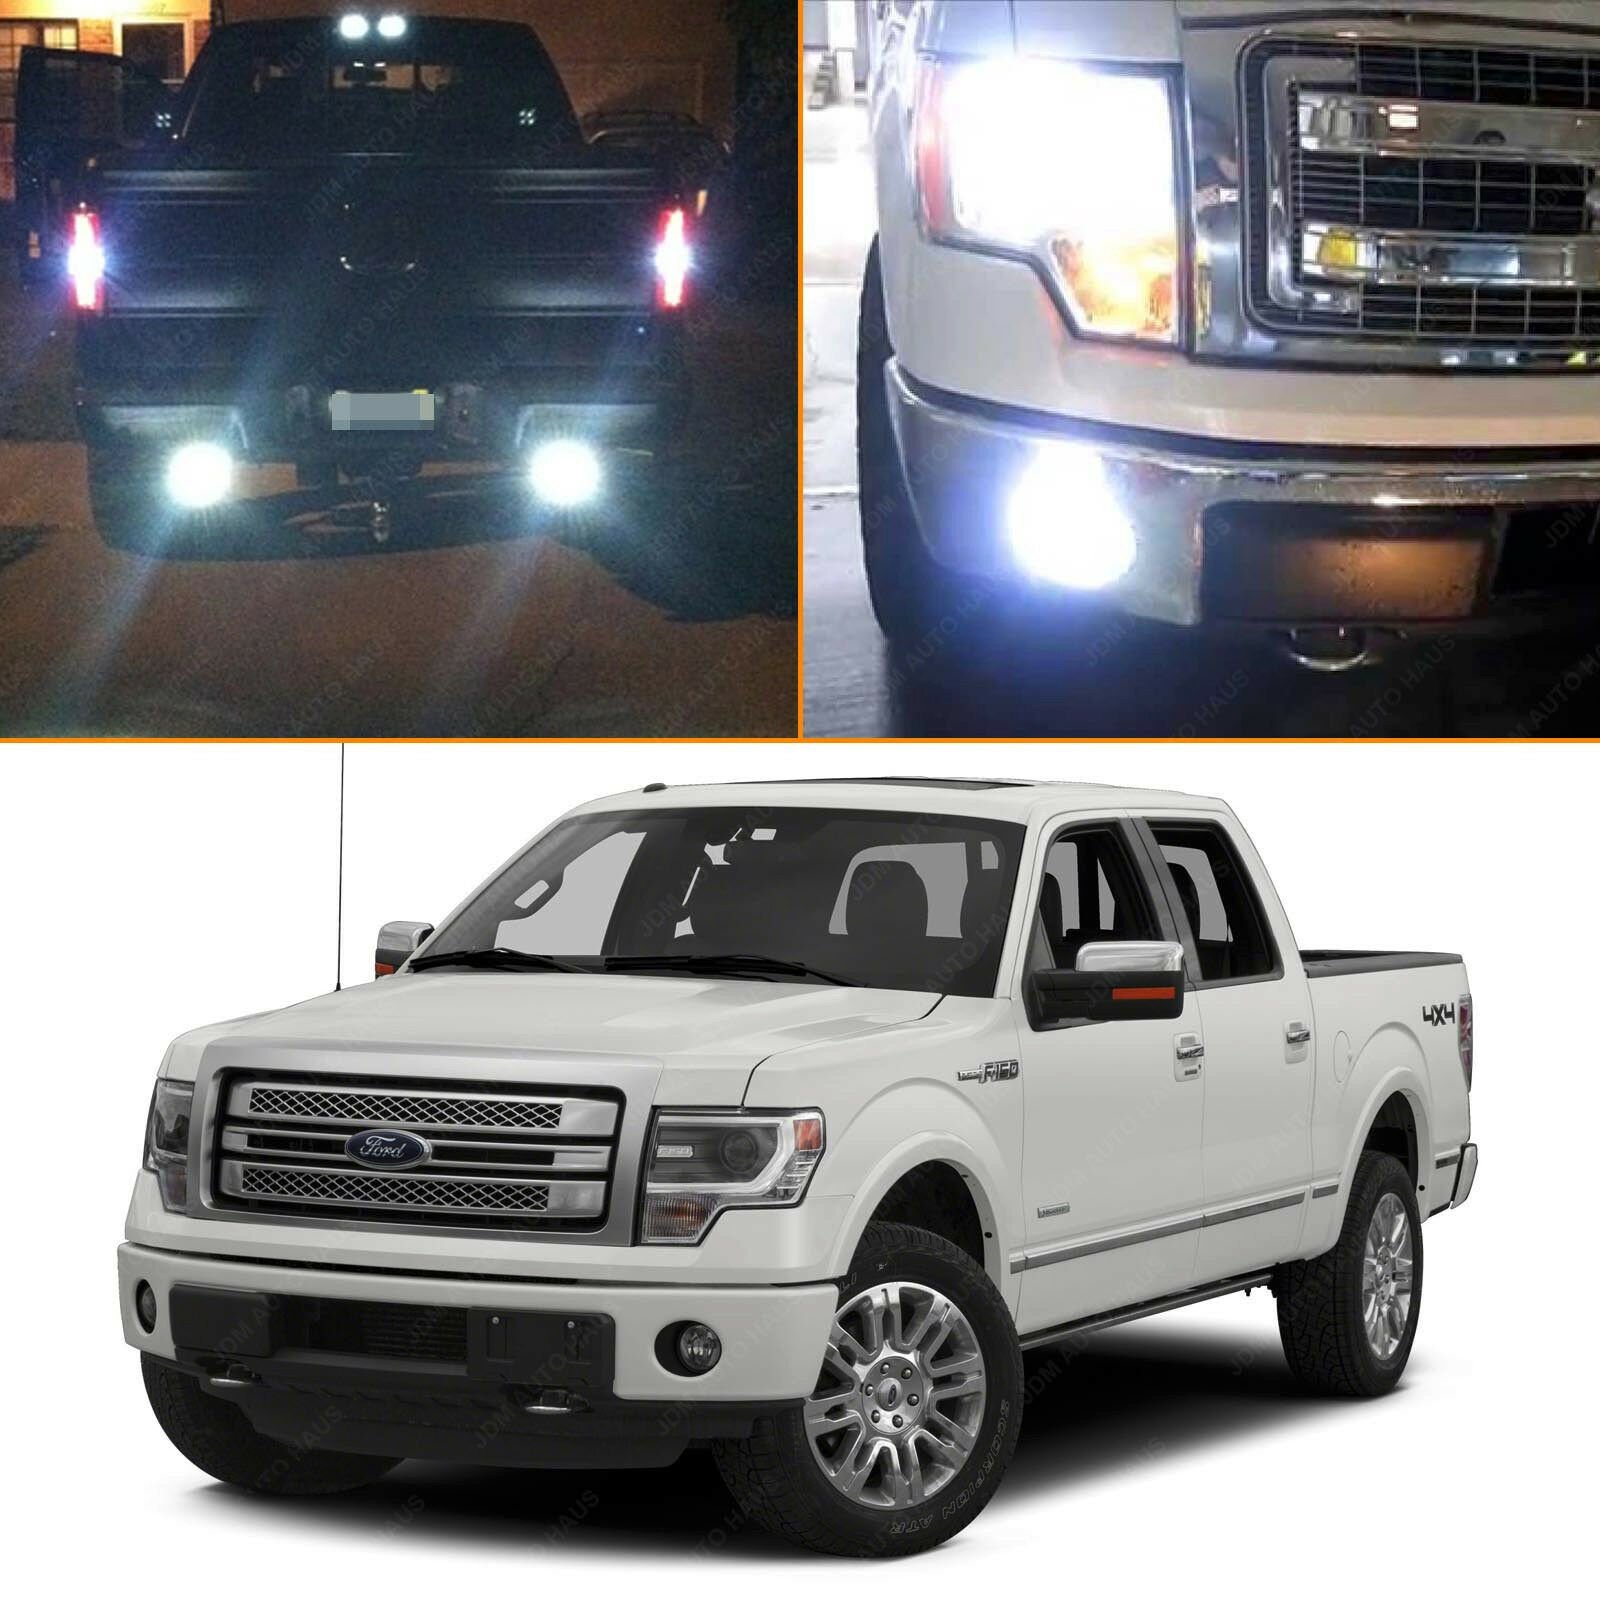 2009 Ford Expedition Exterior: 17x White LED Interior & Exterior Light Package Kit 2009